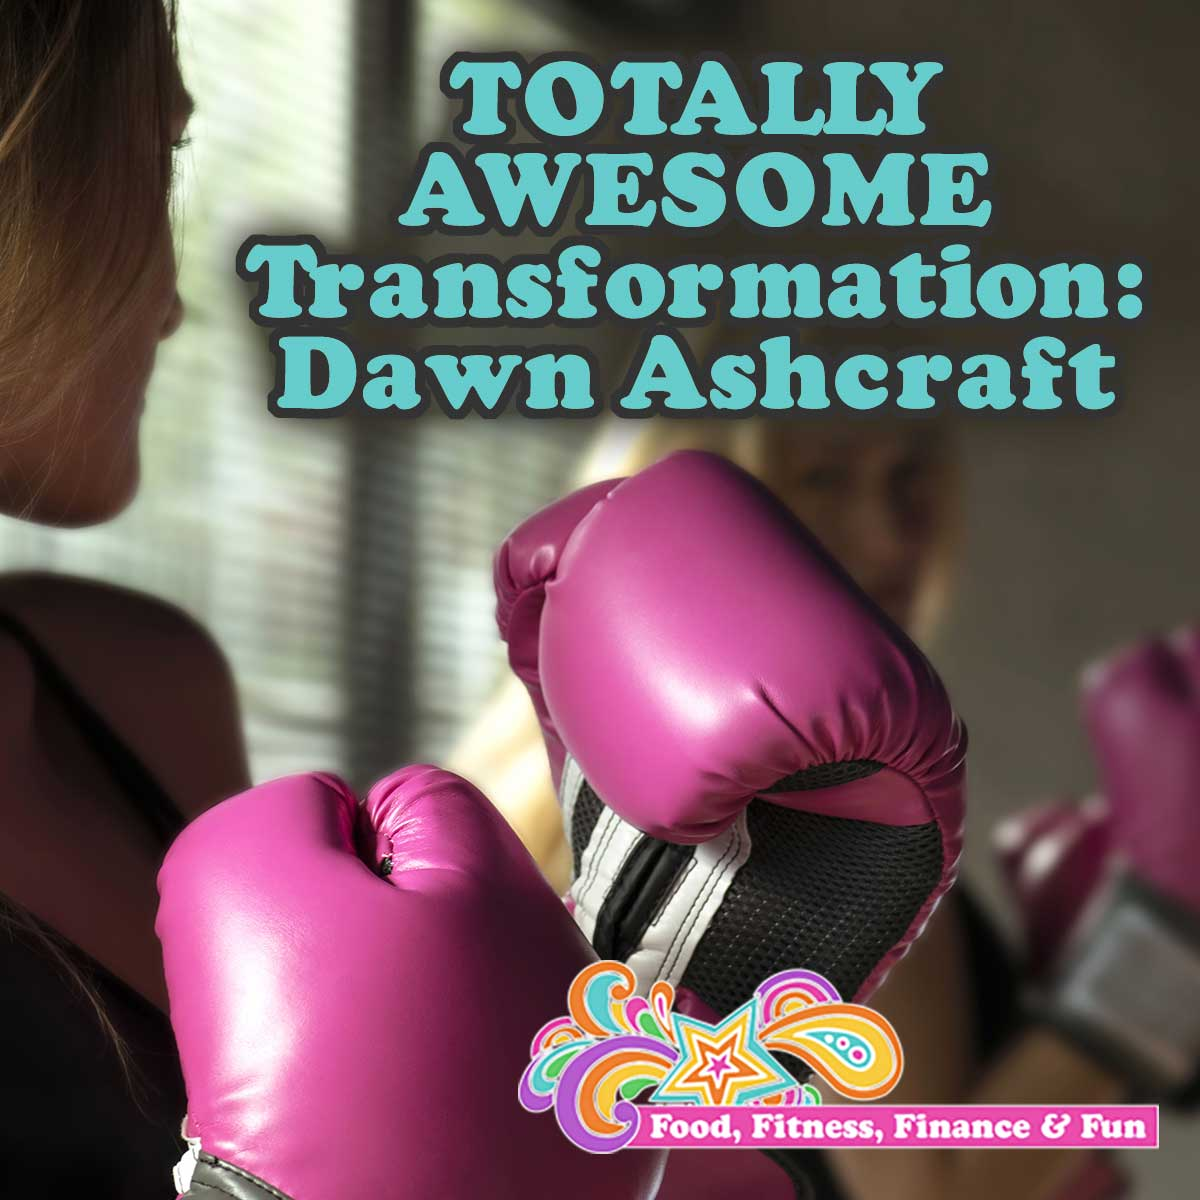 TOTALLY AWESOME Transformation: Dawn Ashcraft